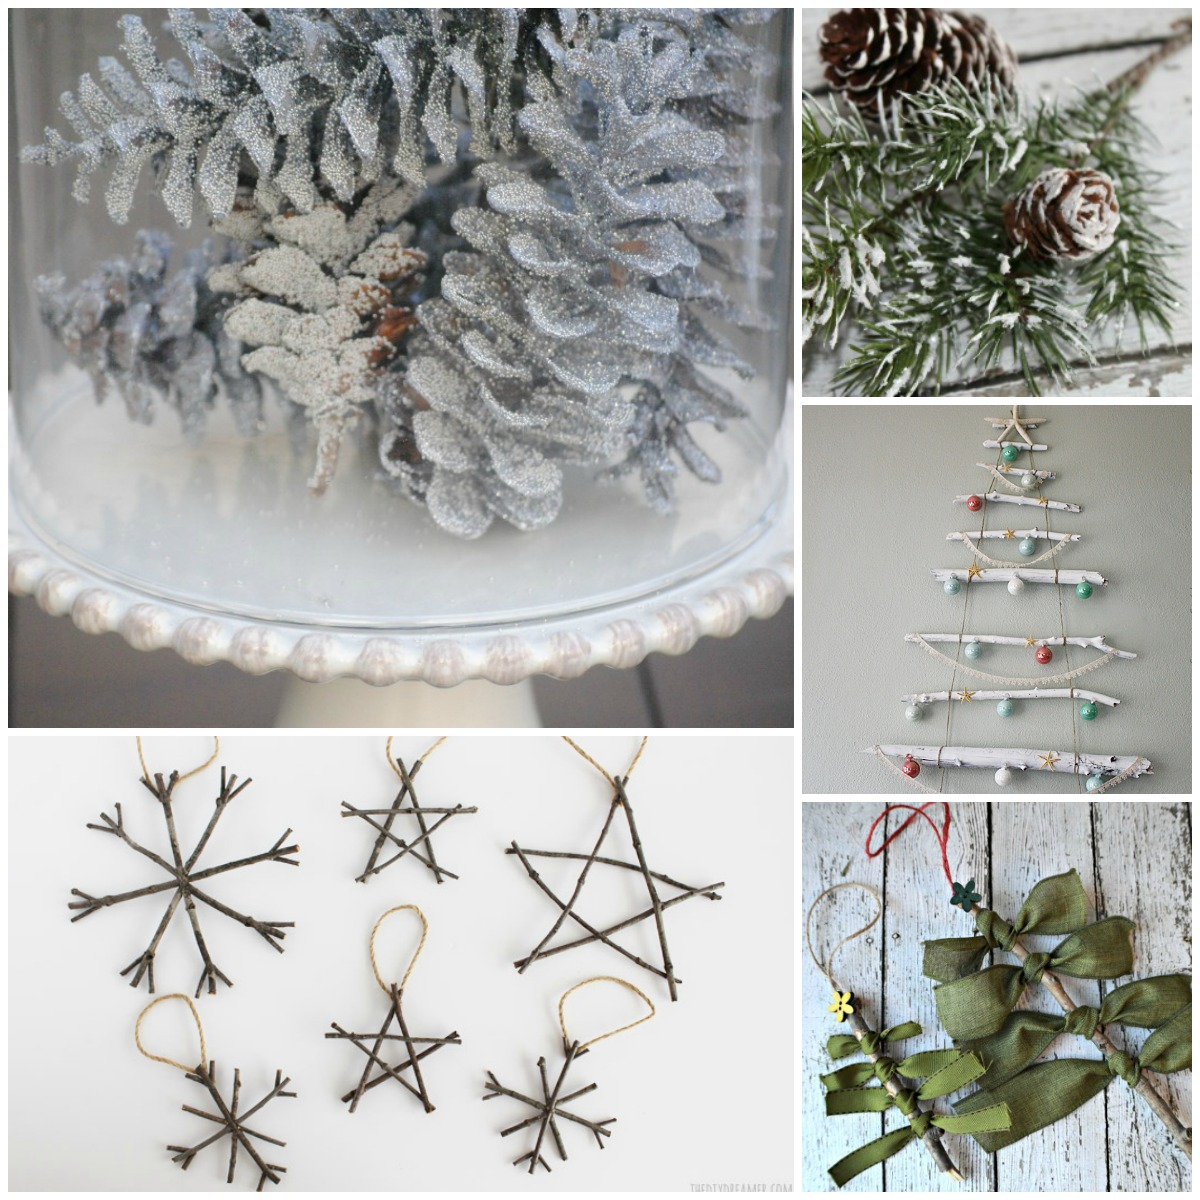 wait free christmas decorations yes please love these ideas for free natural